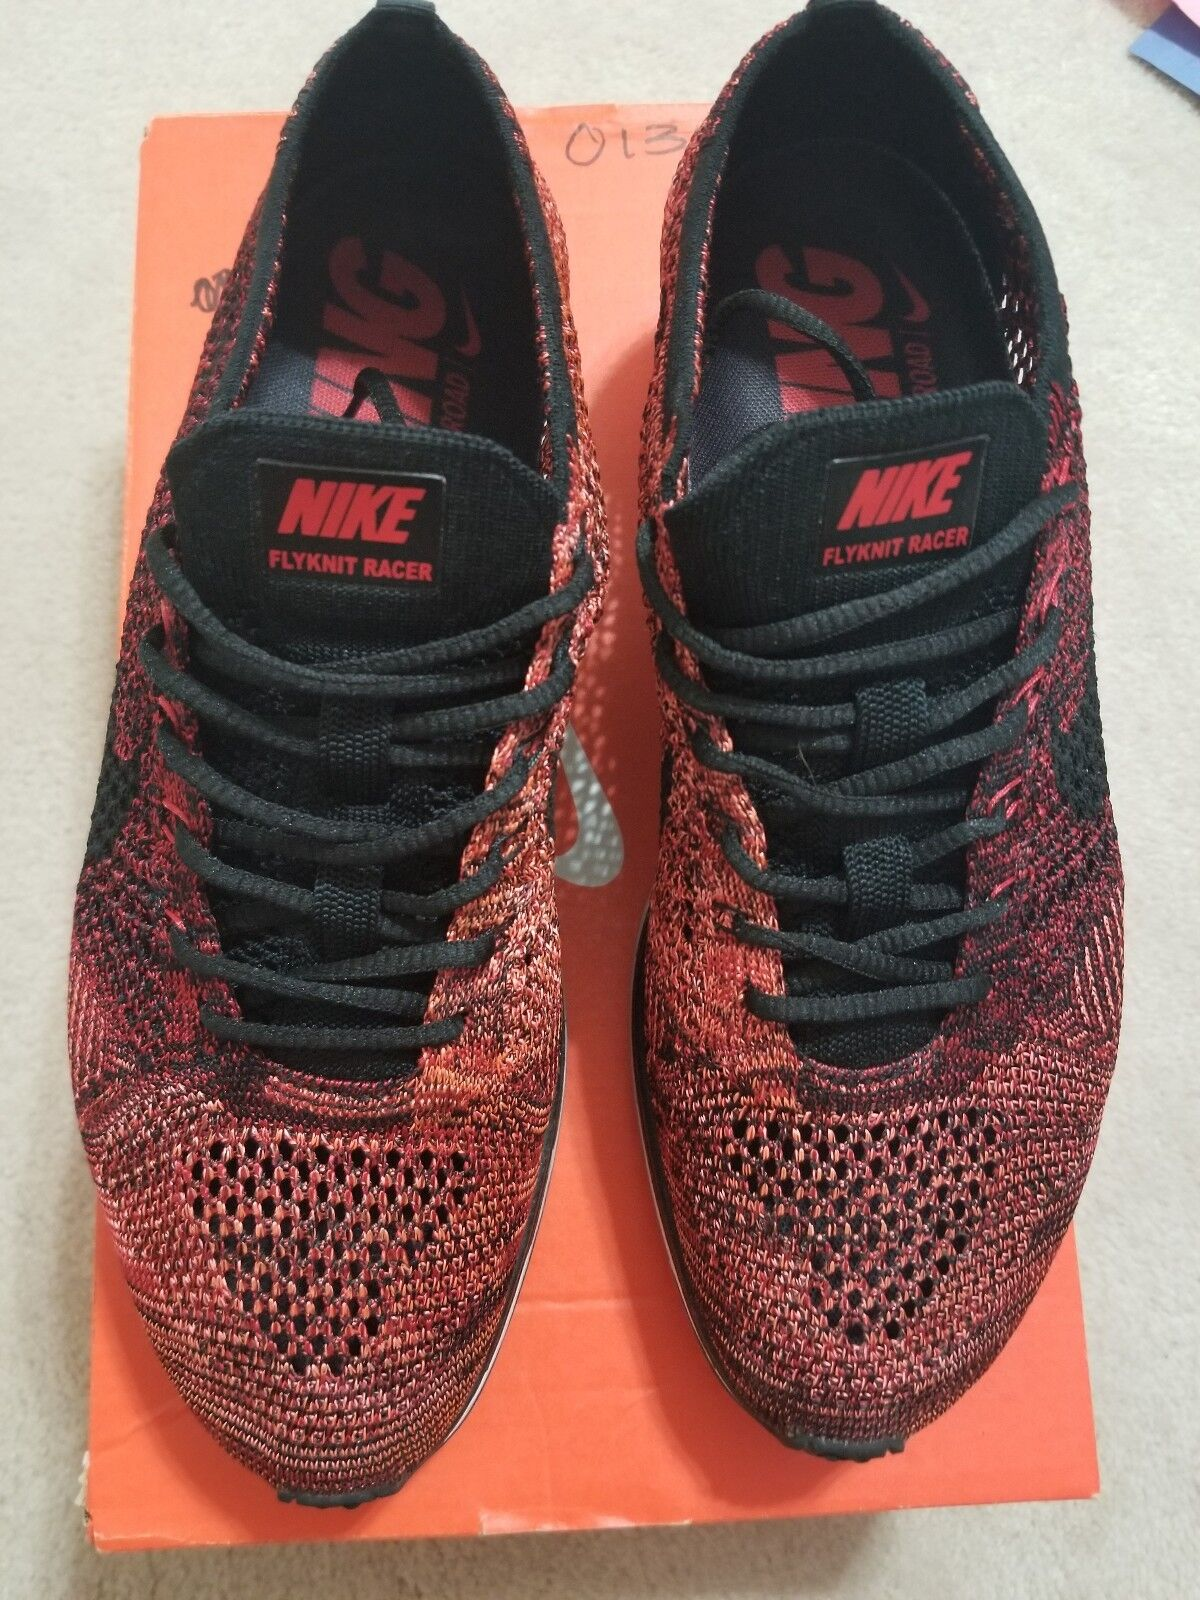 Nike Flyknit Racer University Bright Red Black 2018 Multicolor VNDS Air Max